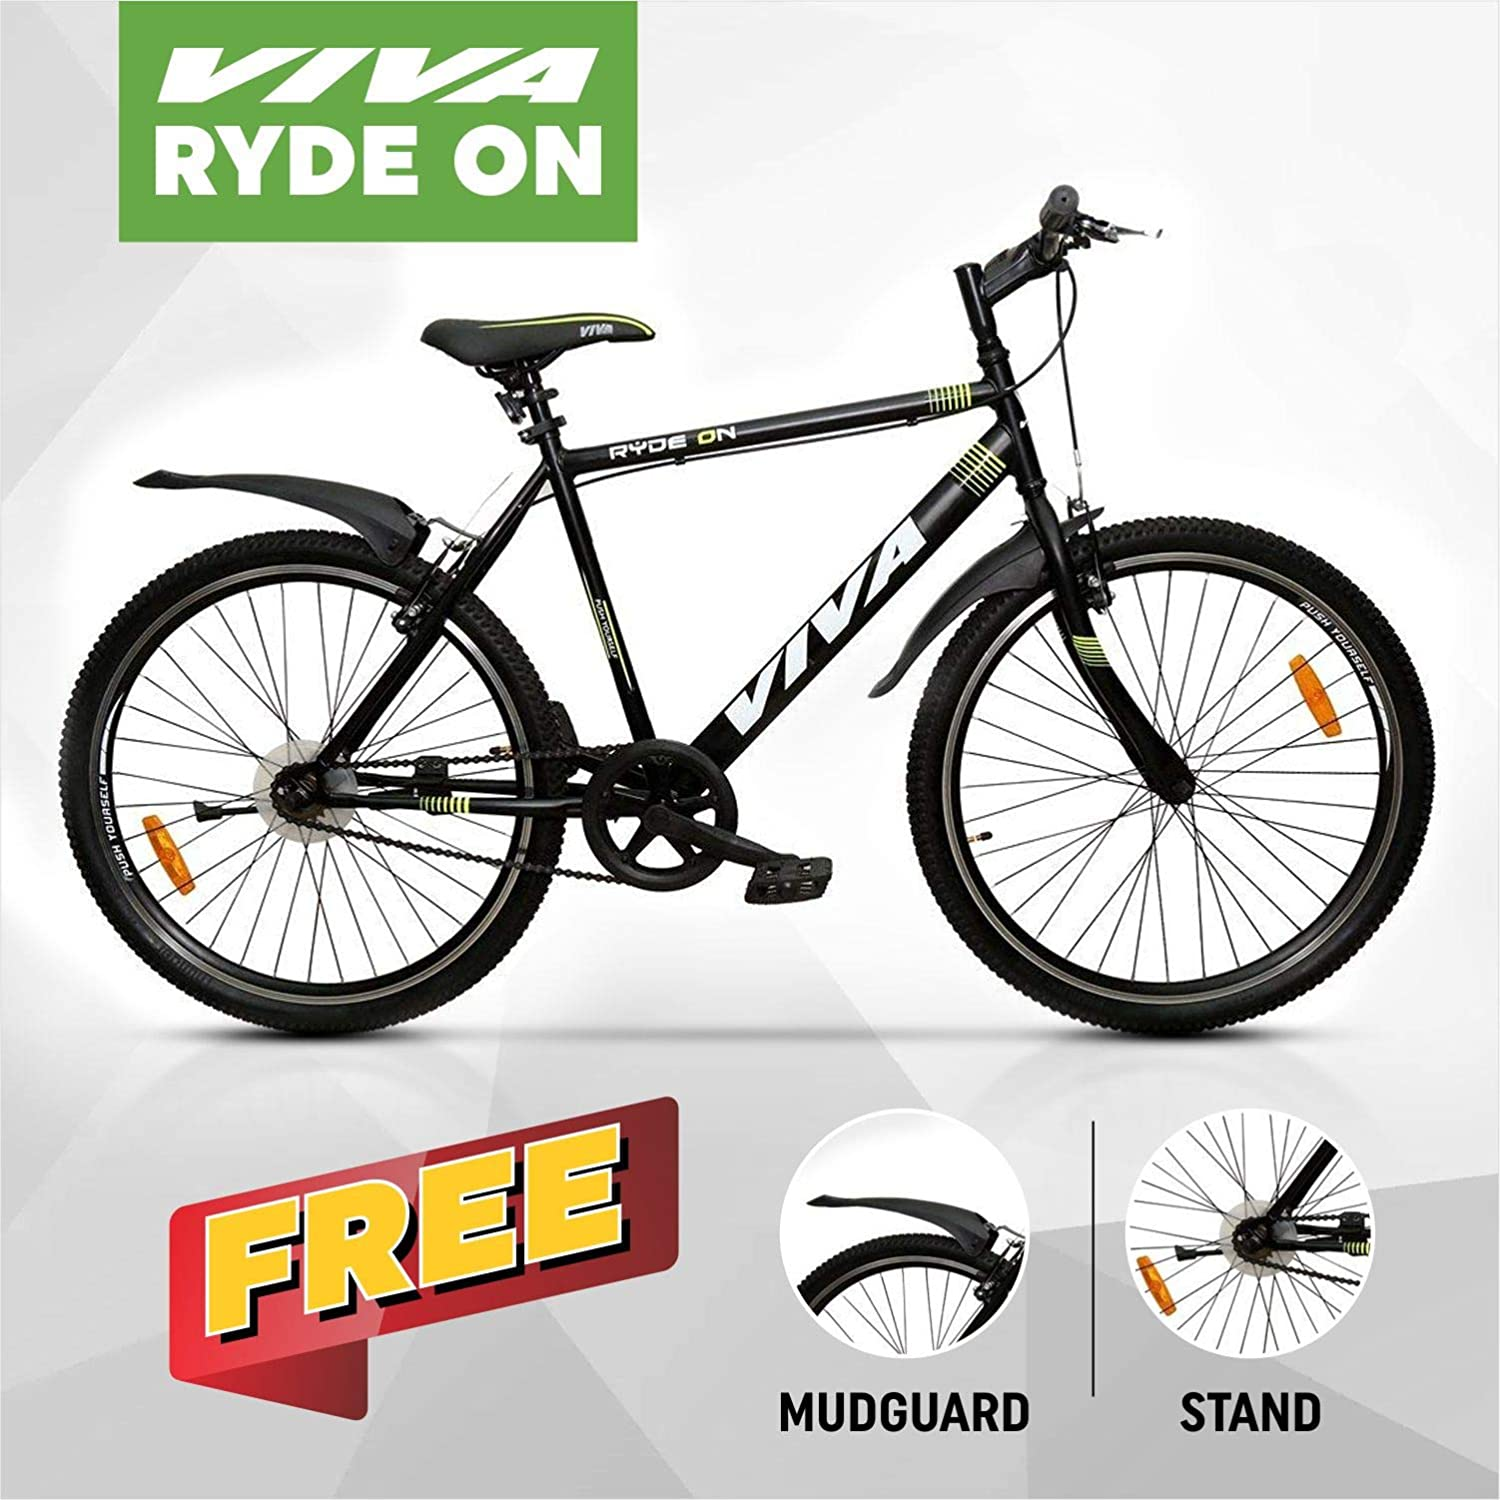 e048a7d2f61 Viva Ryde On 26T Single Speed Cycle (with free mudgaurd & stand):  Amazon.in: Sports, Fitness & Outdoors